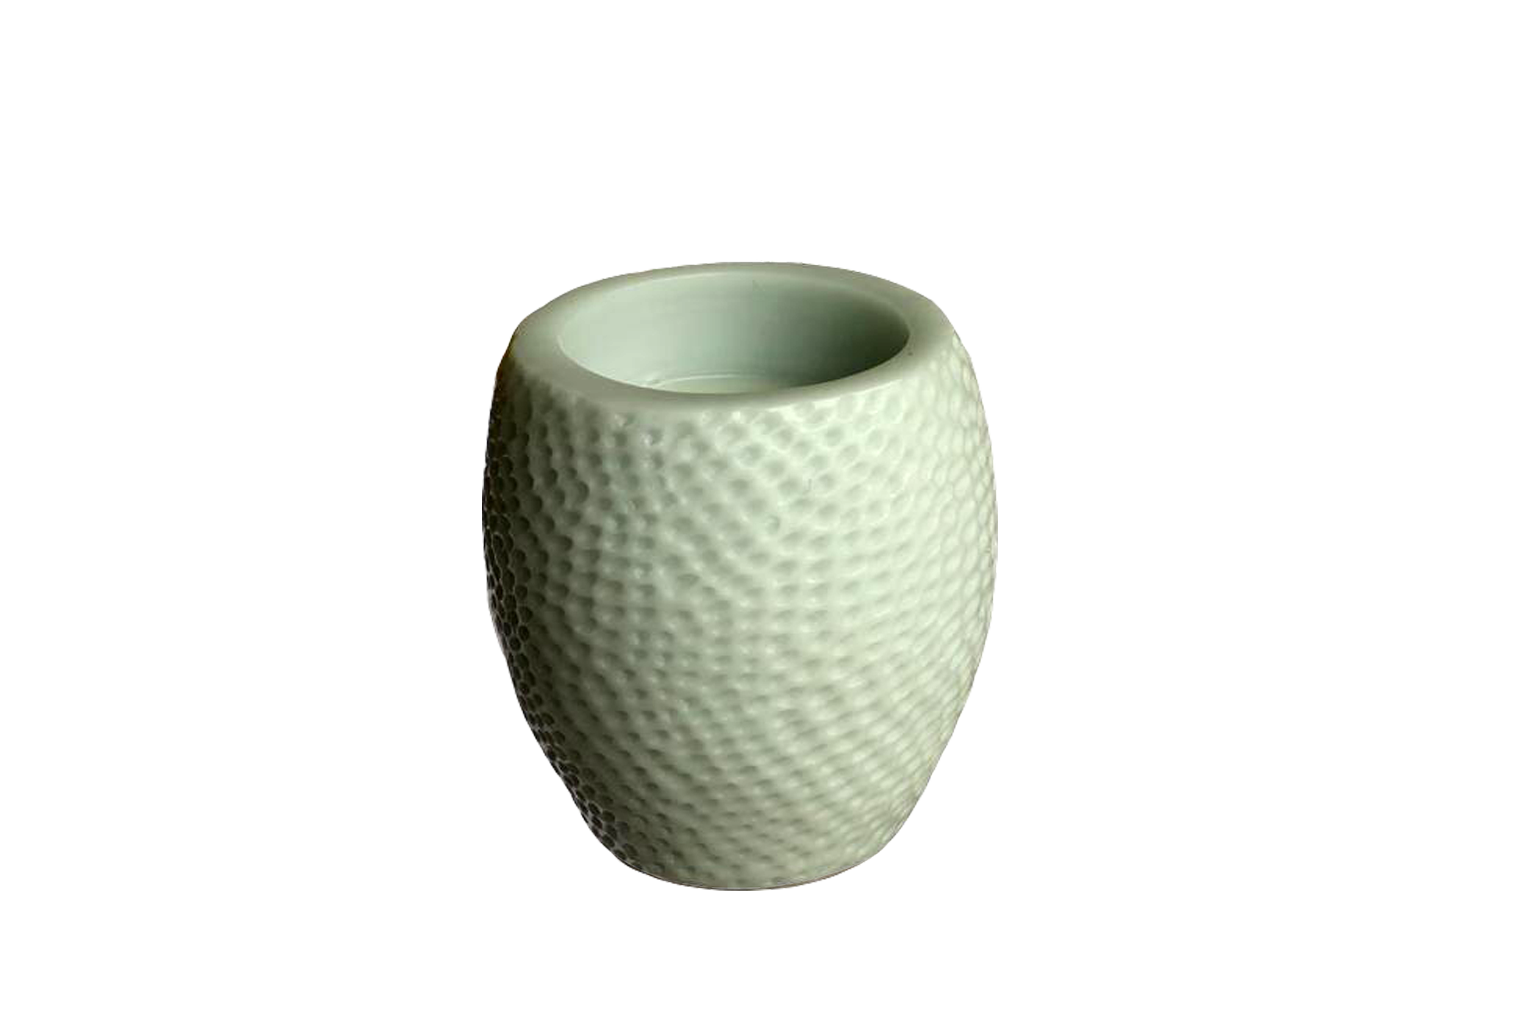 Mint Green Hammered Beeswax Candle - Small - S$35